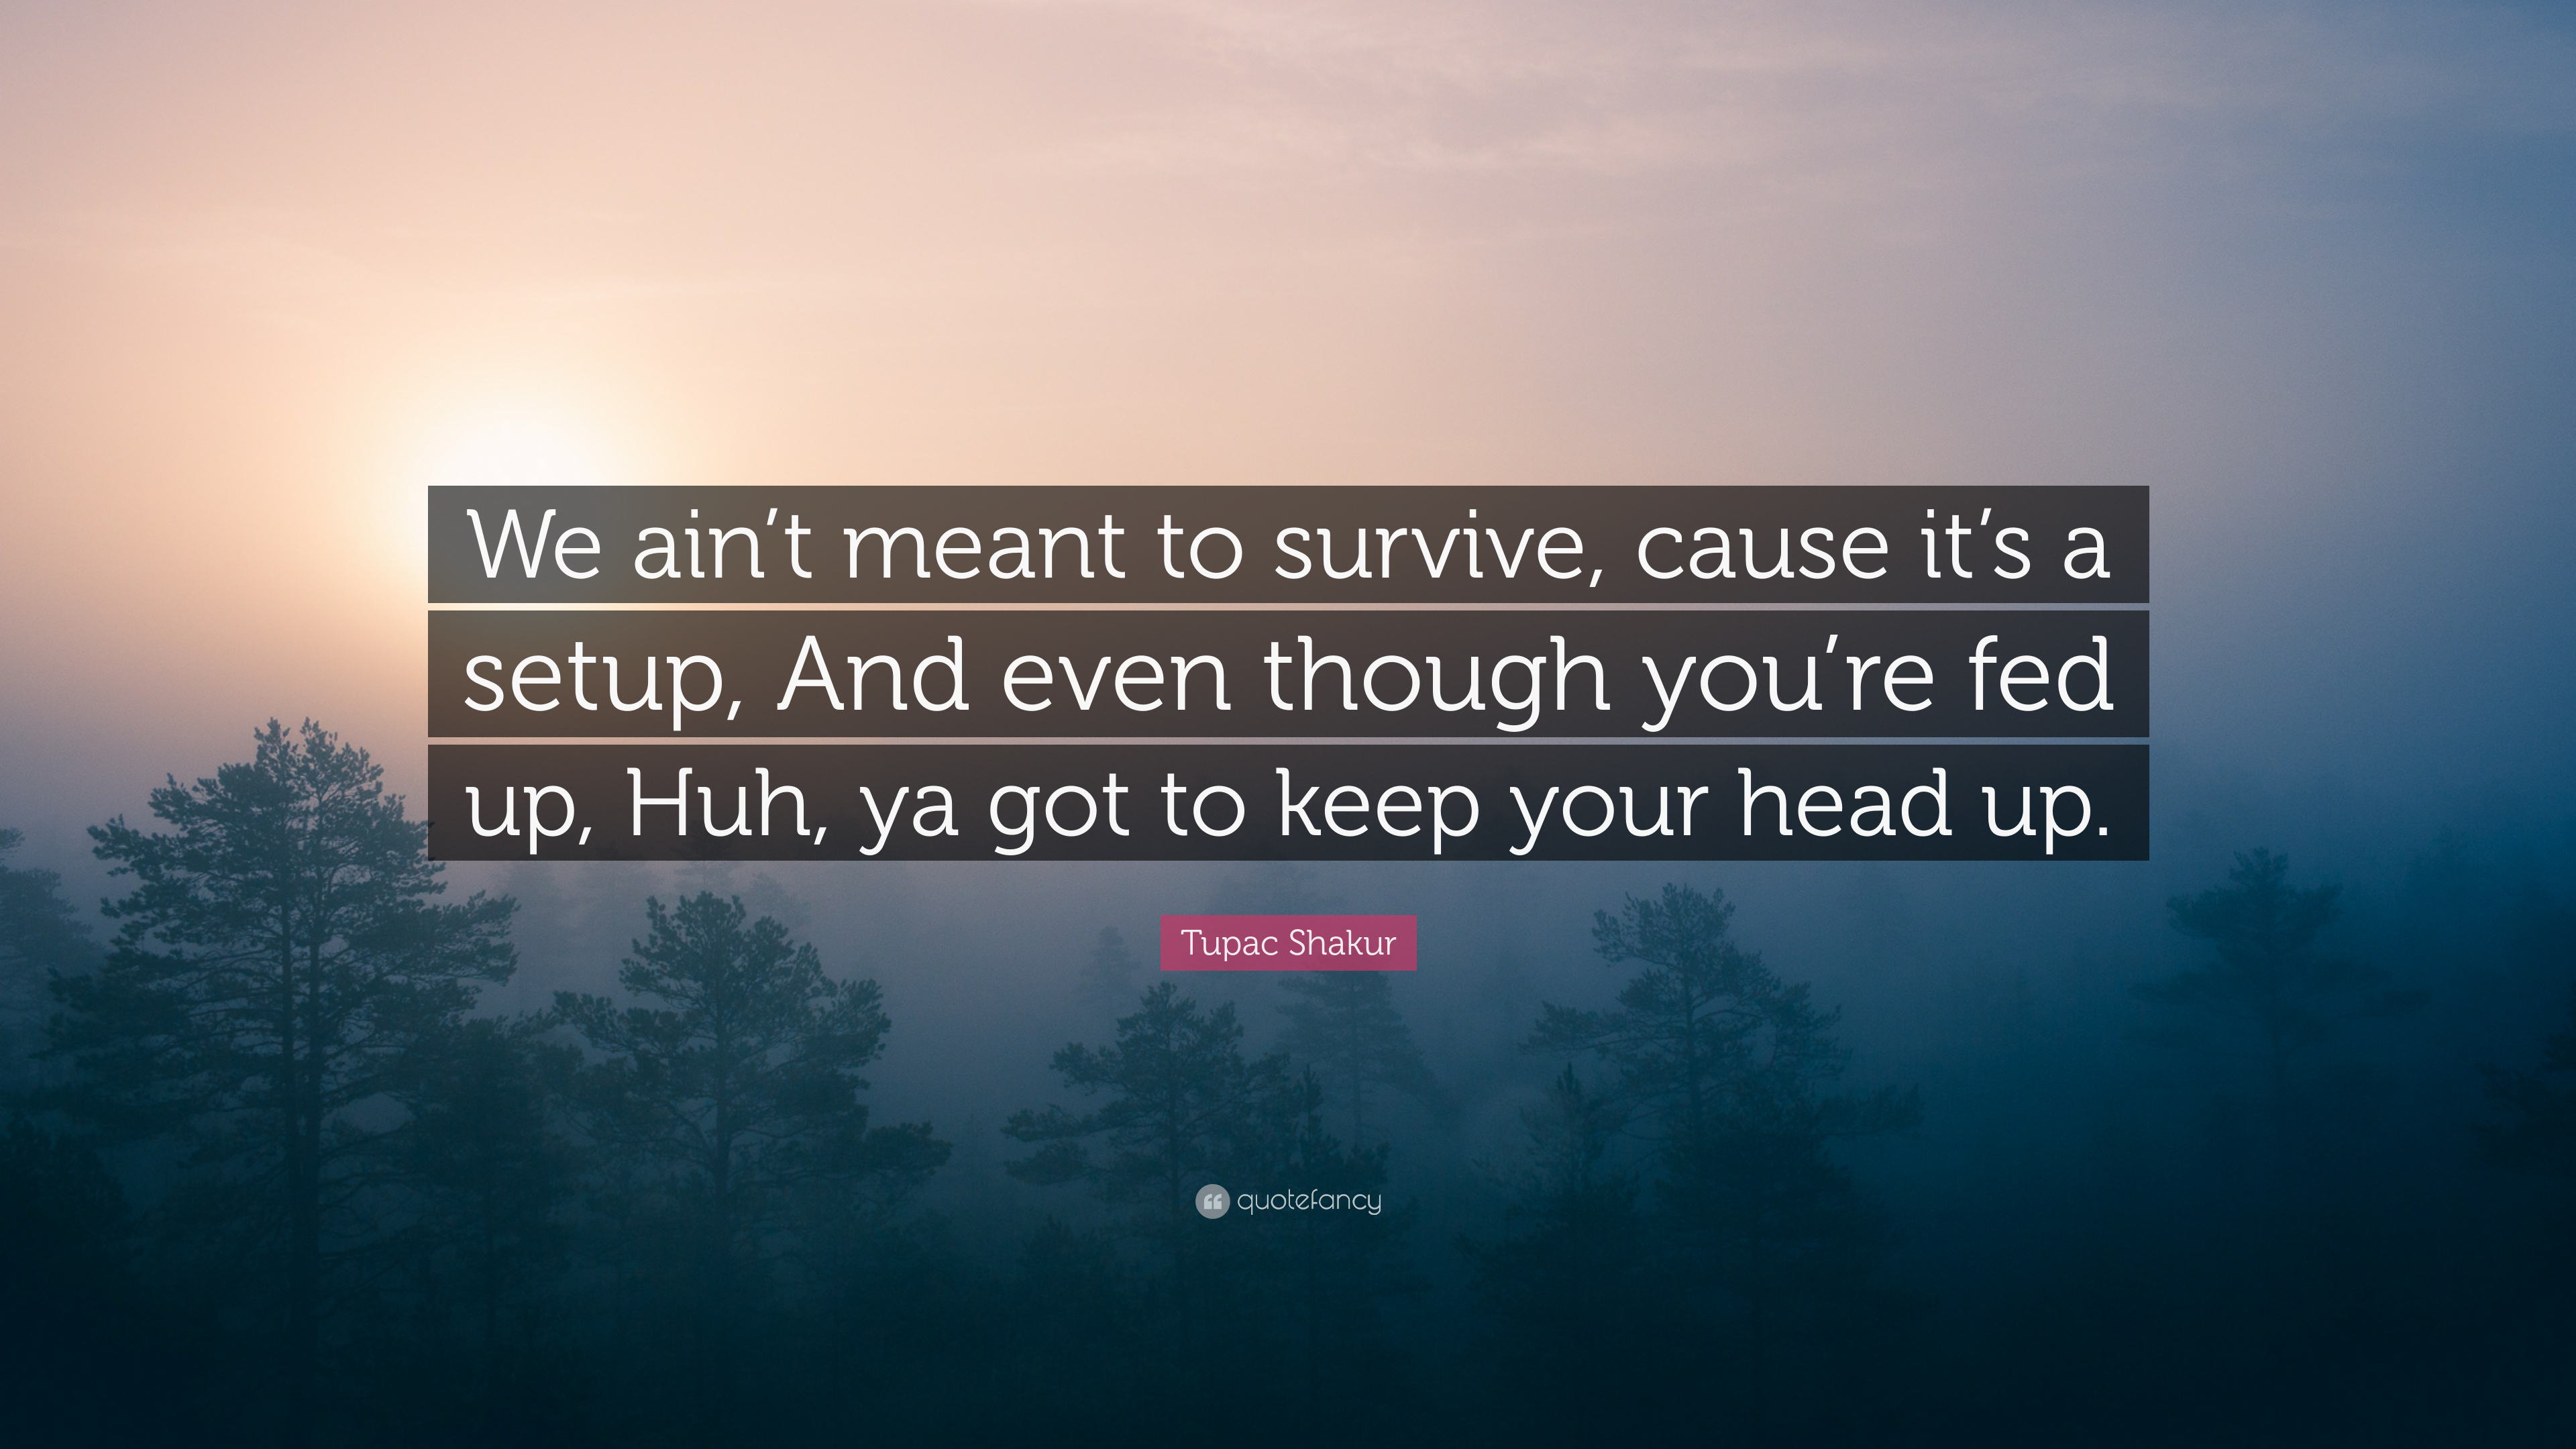 Tupac Shakur Quote We Aint Meant To Survive Cause Its A Setup